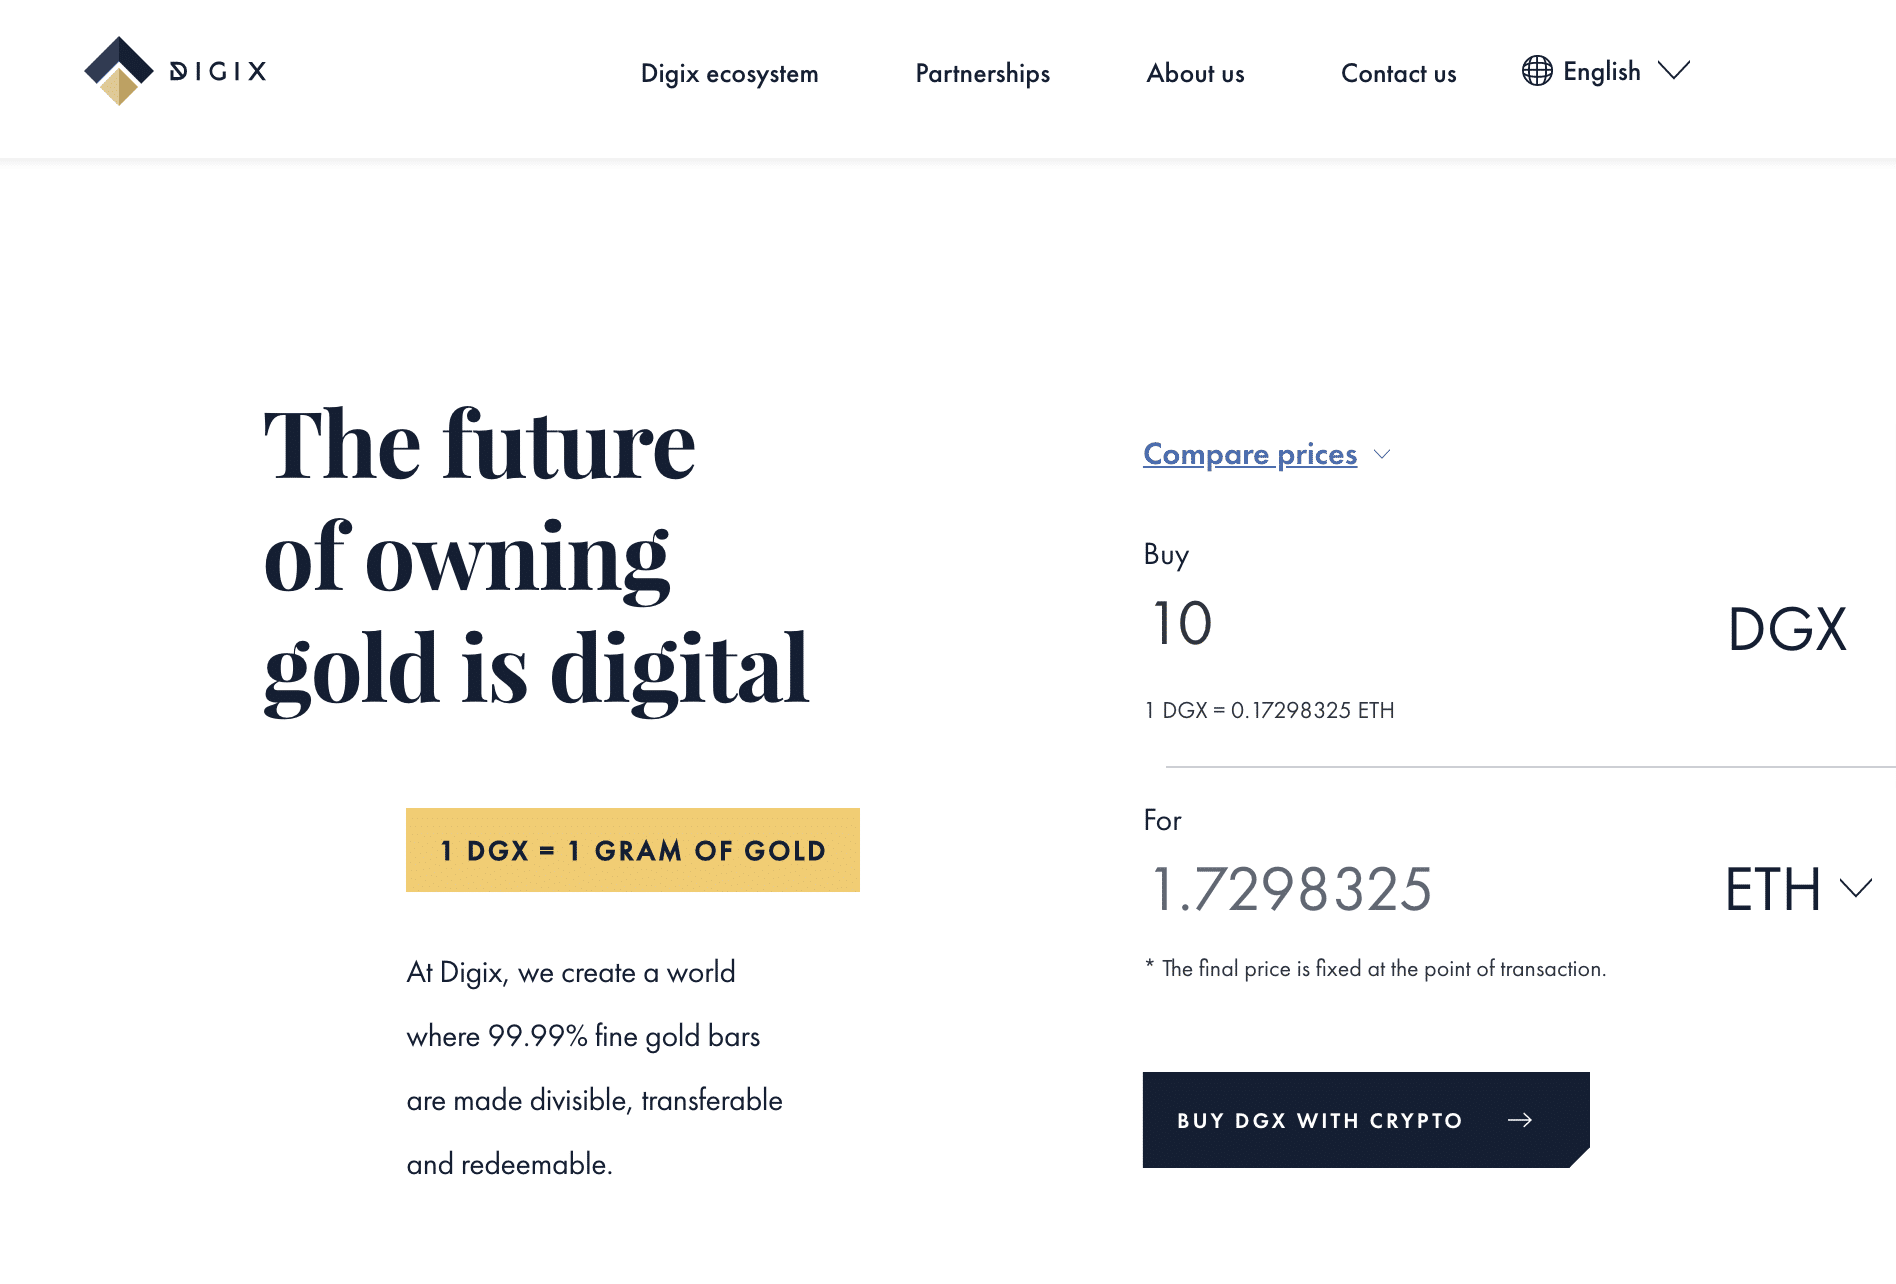 Digix (DGX): Gold-backed Stablecoin